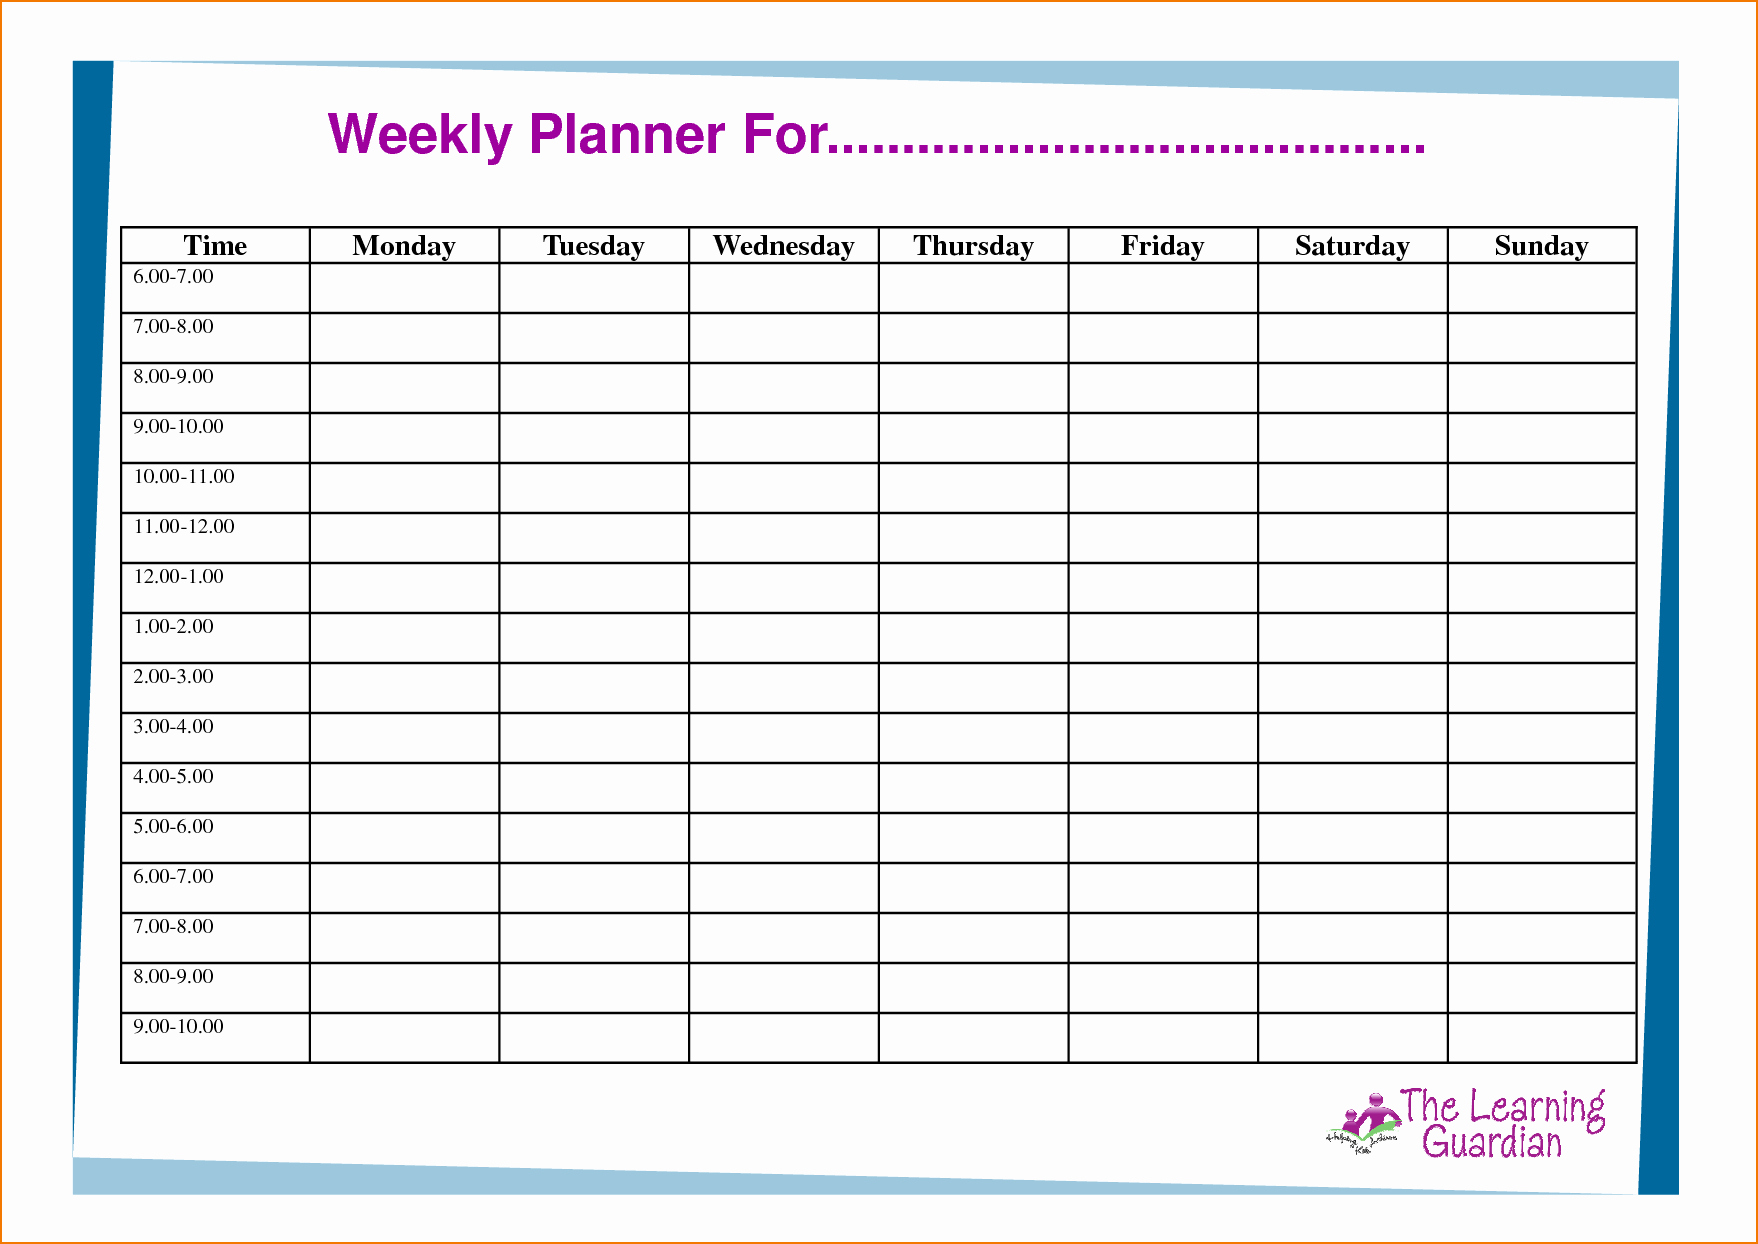 One Week Schedule Template Elegant 6 Week Planner Template